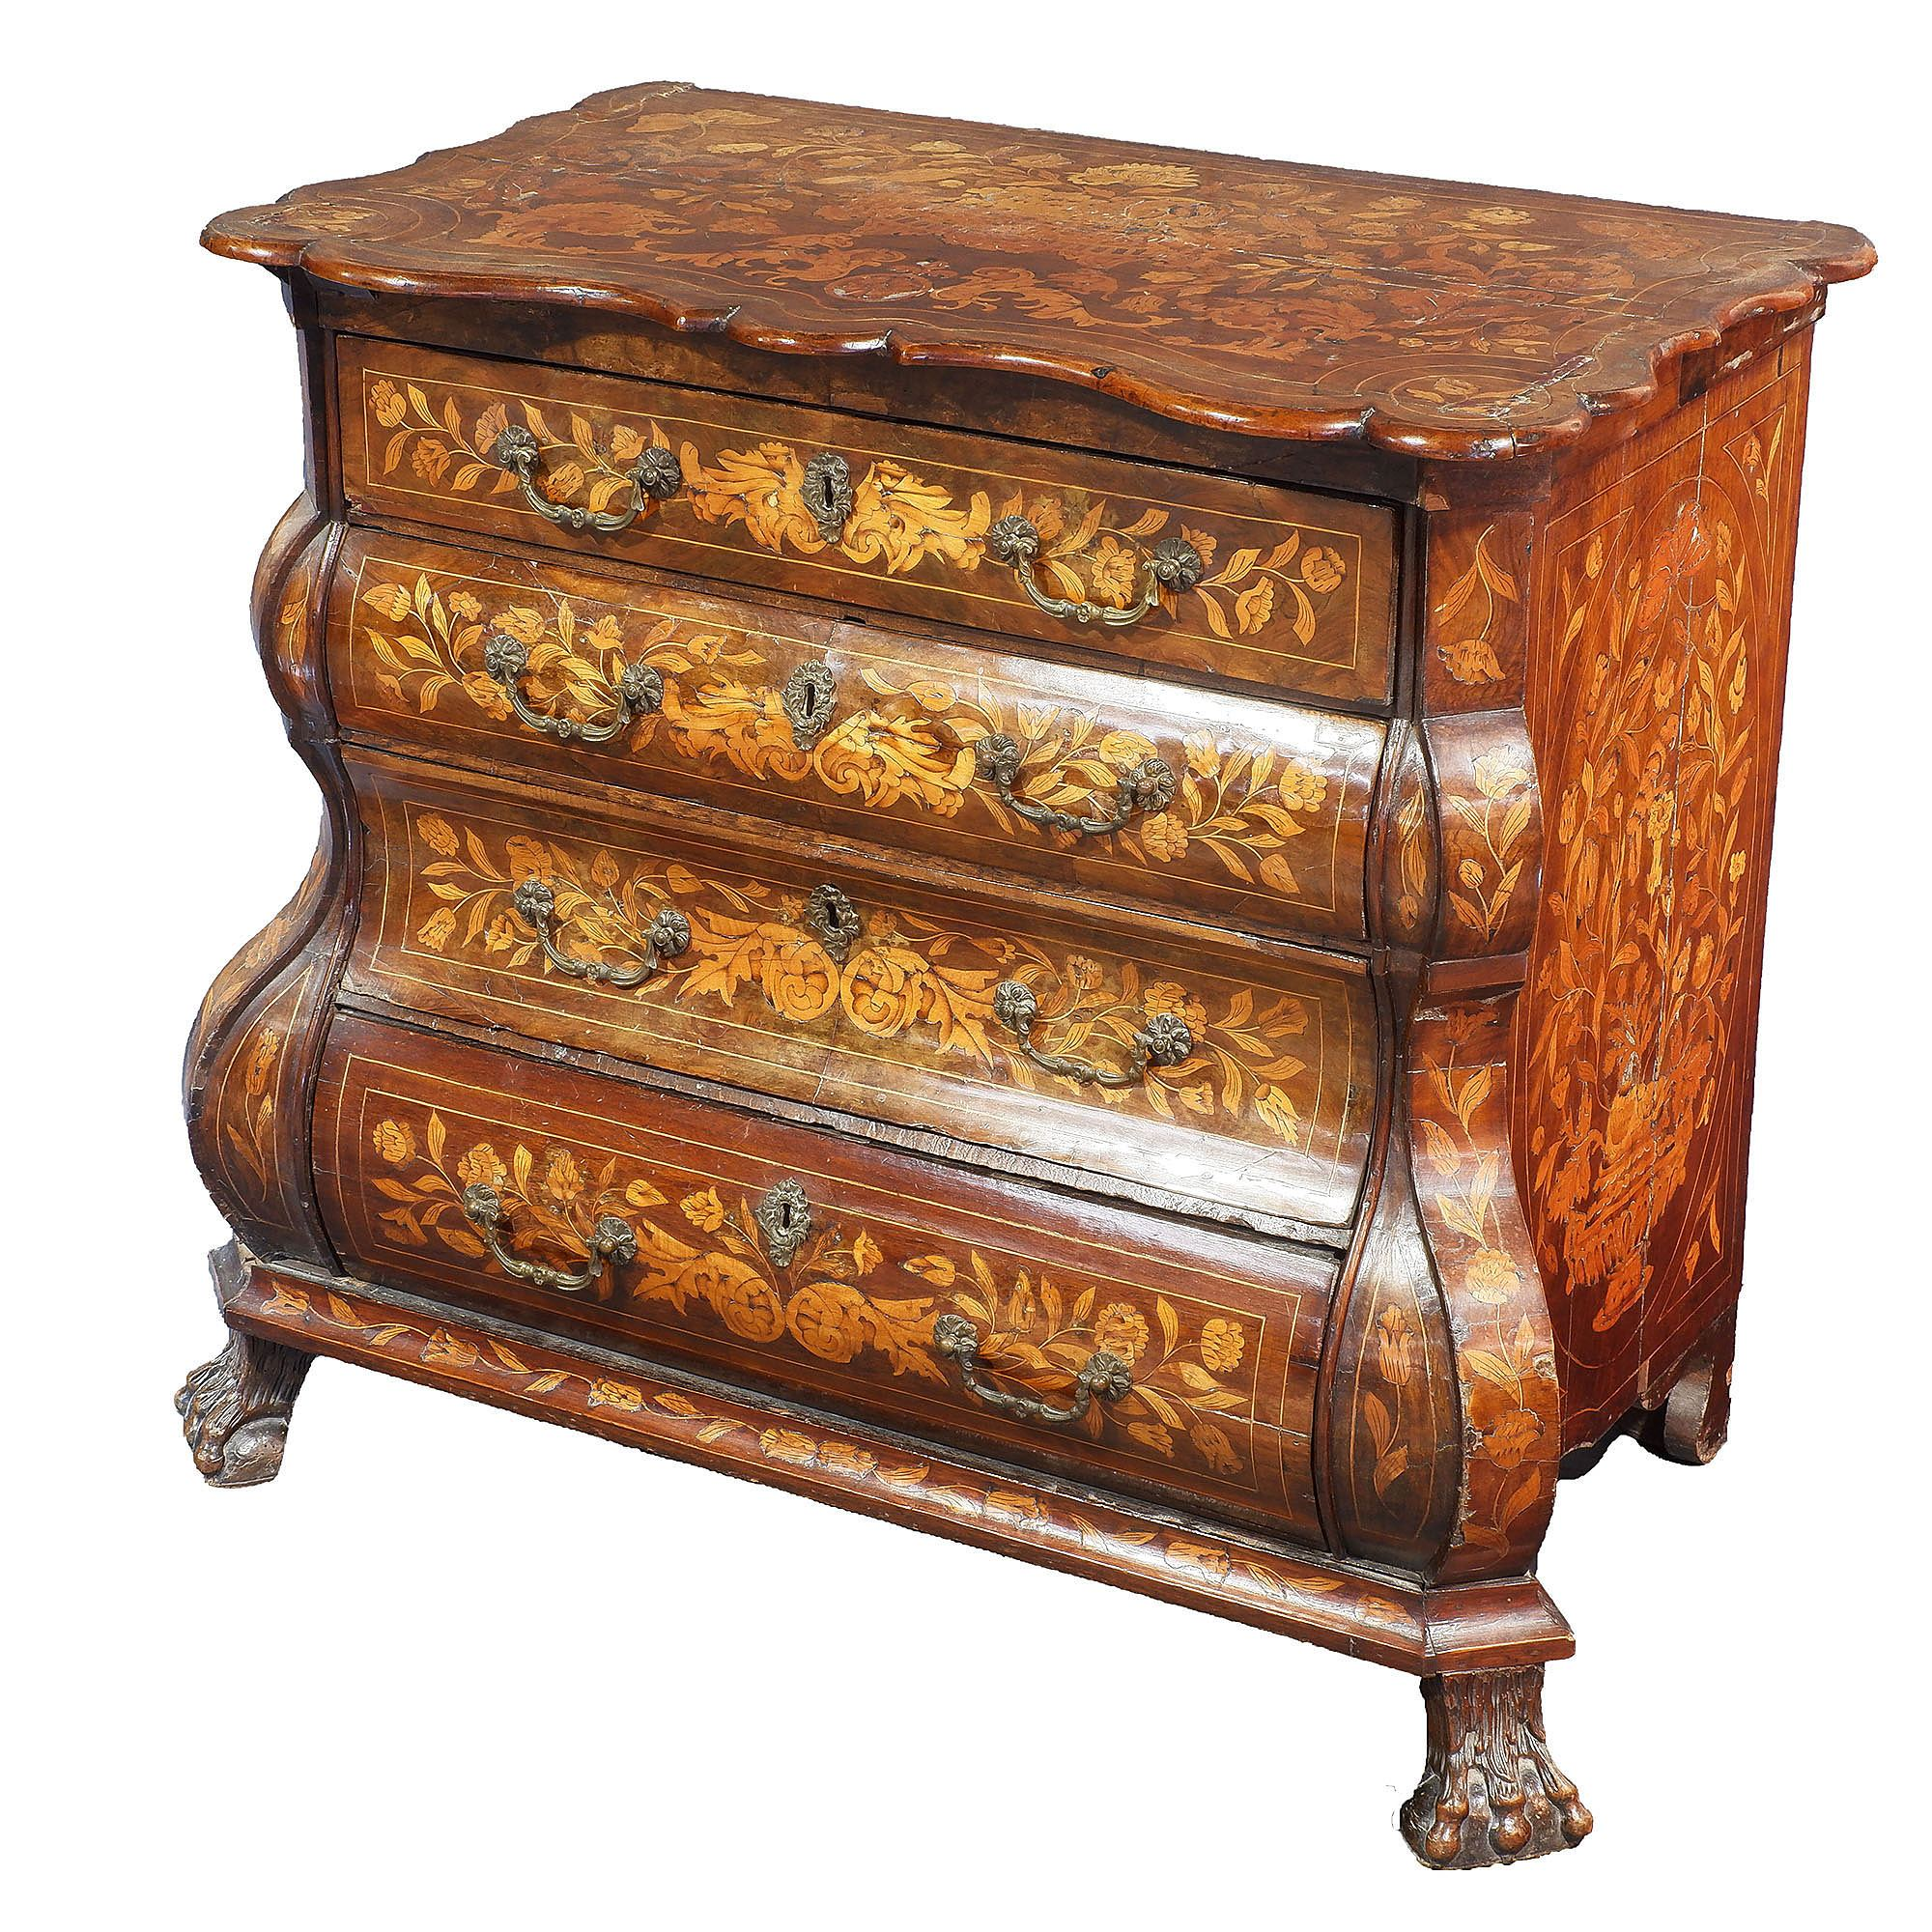 'Flemish Marquetry Inlaid Walnut Bomb Shape Commode Circa 1780'